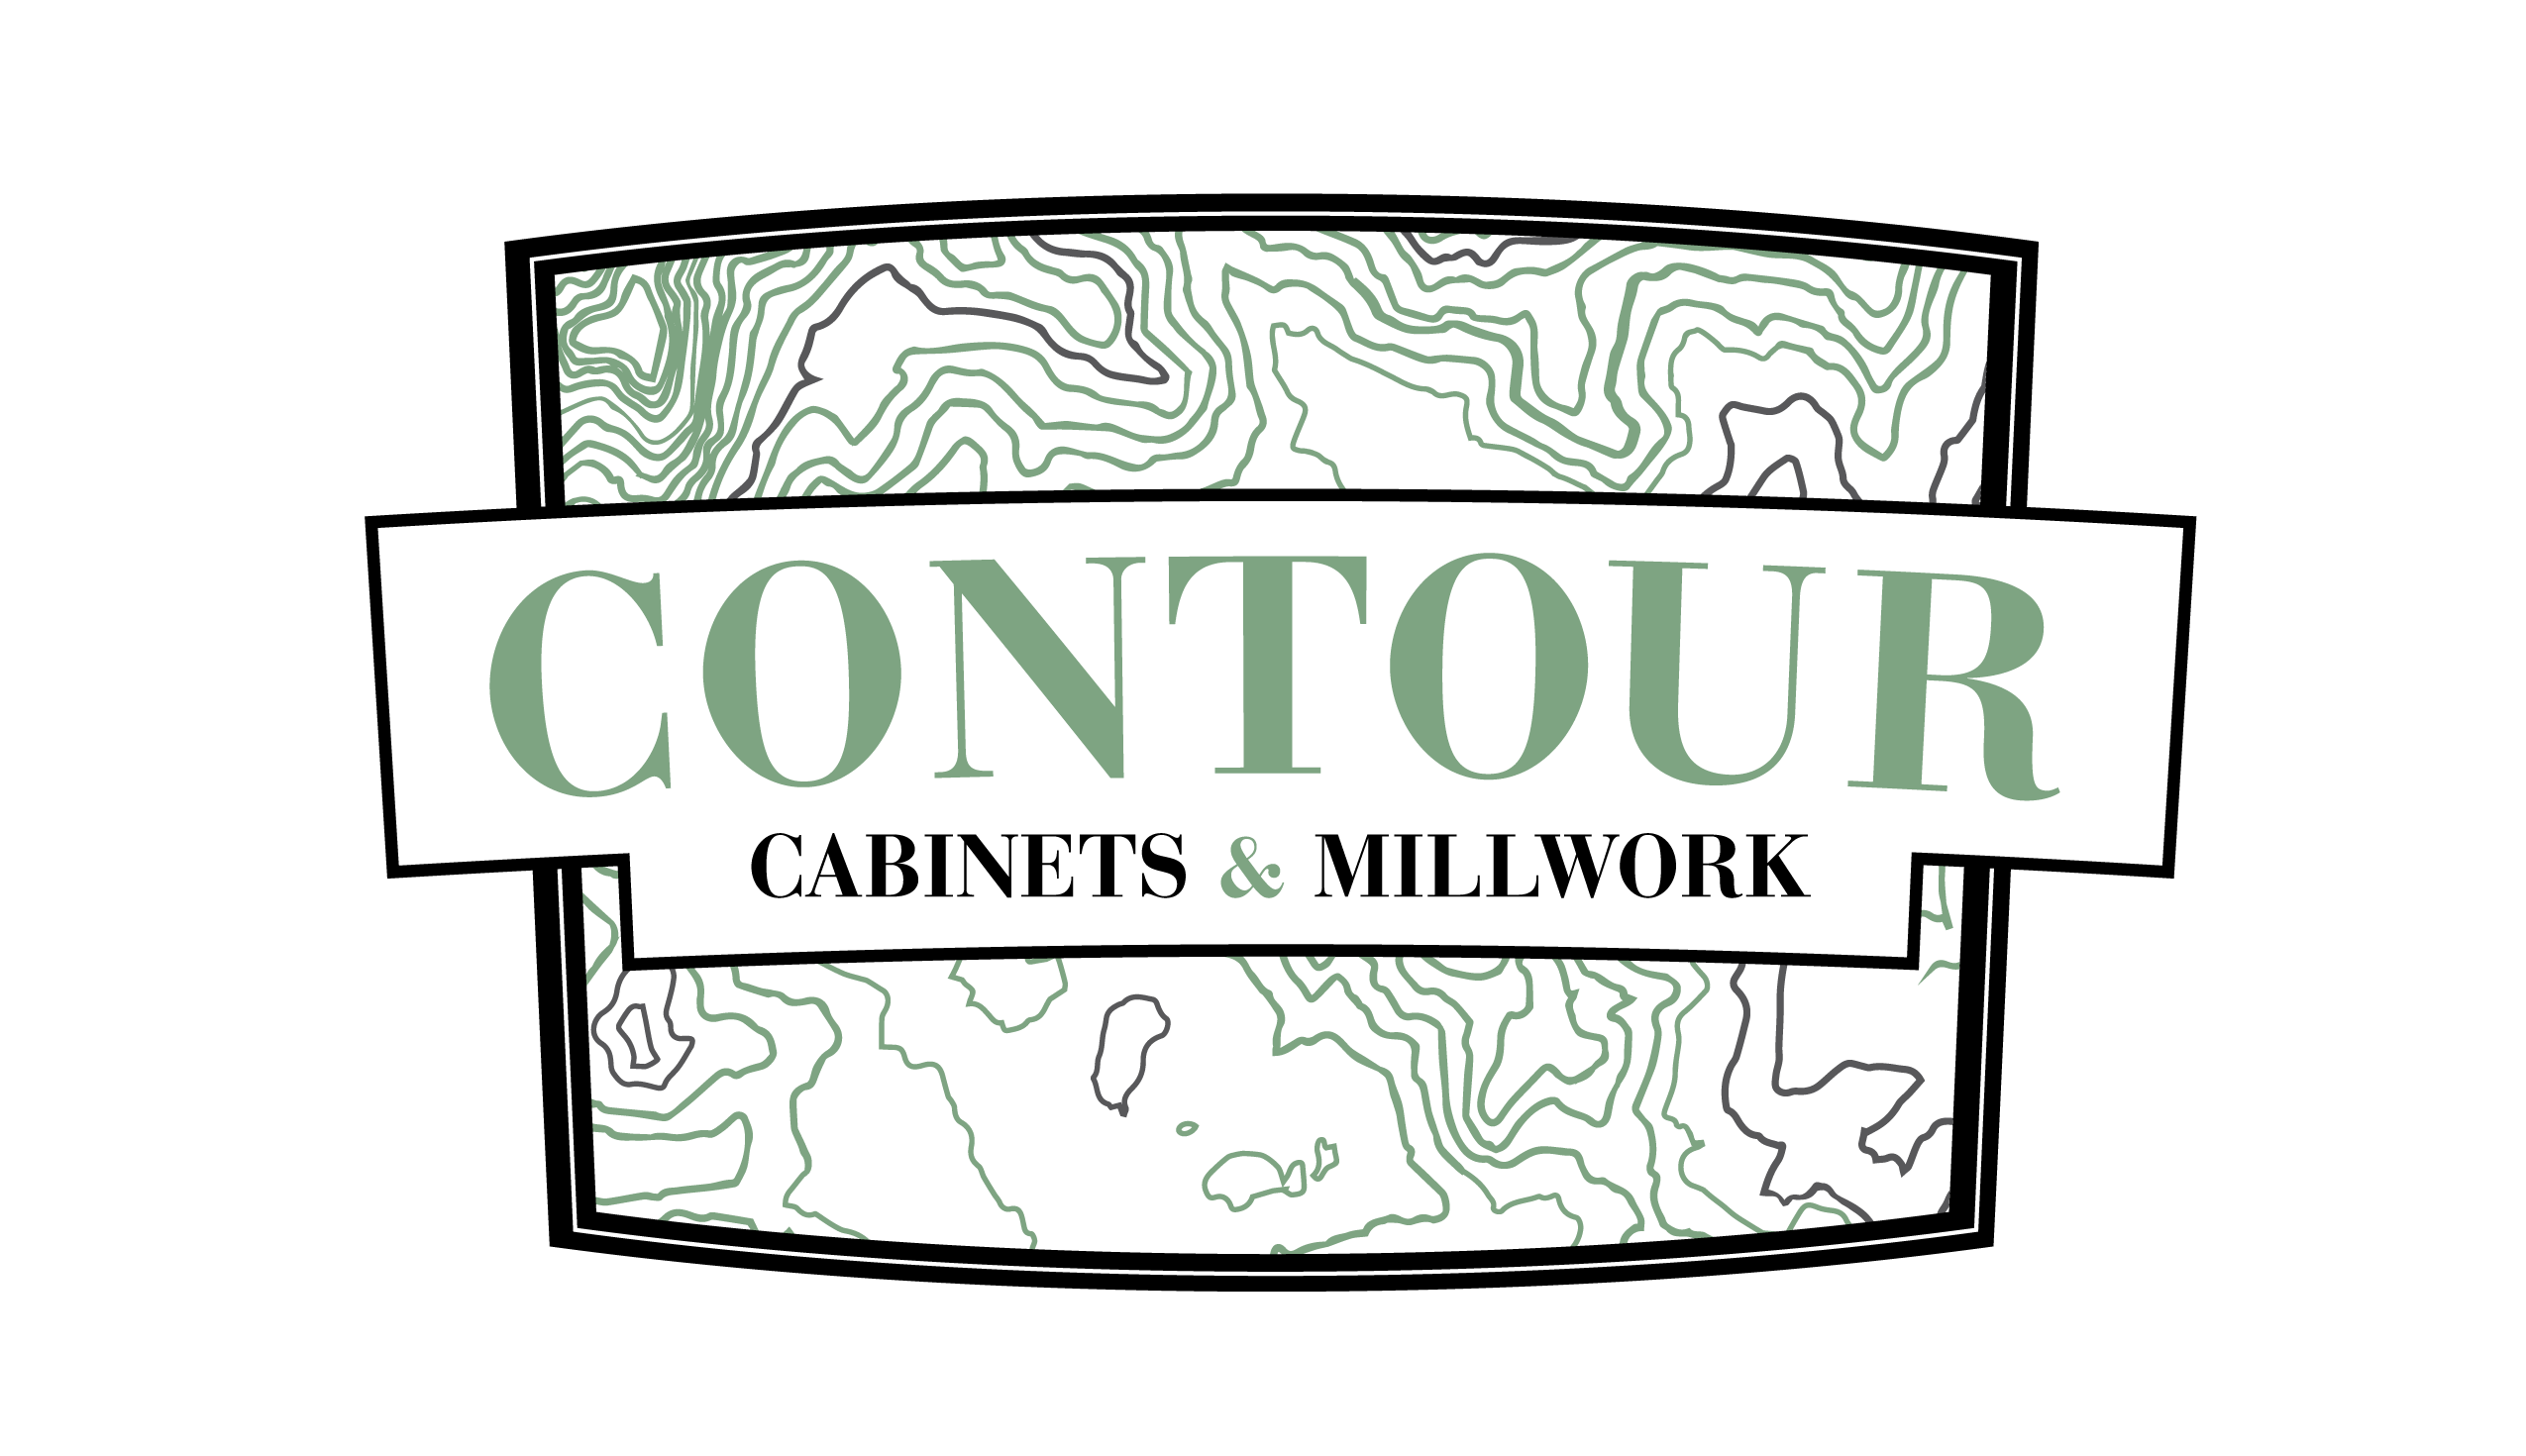 Contour Cabinets & Millwork